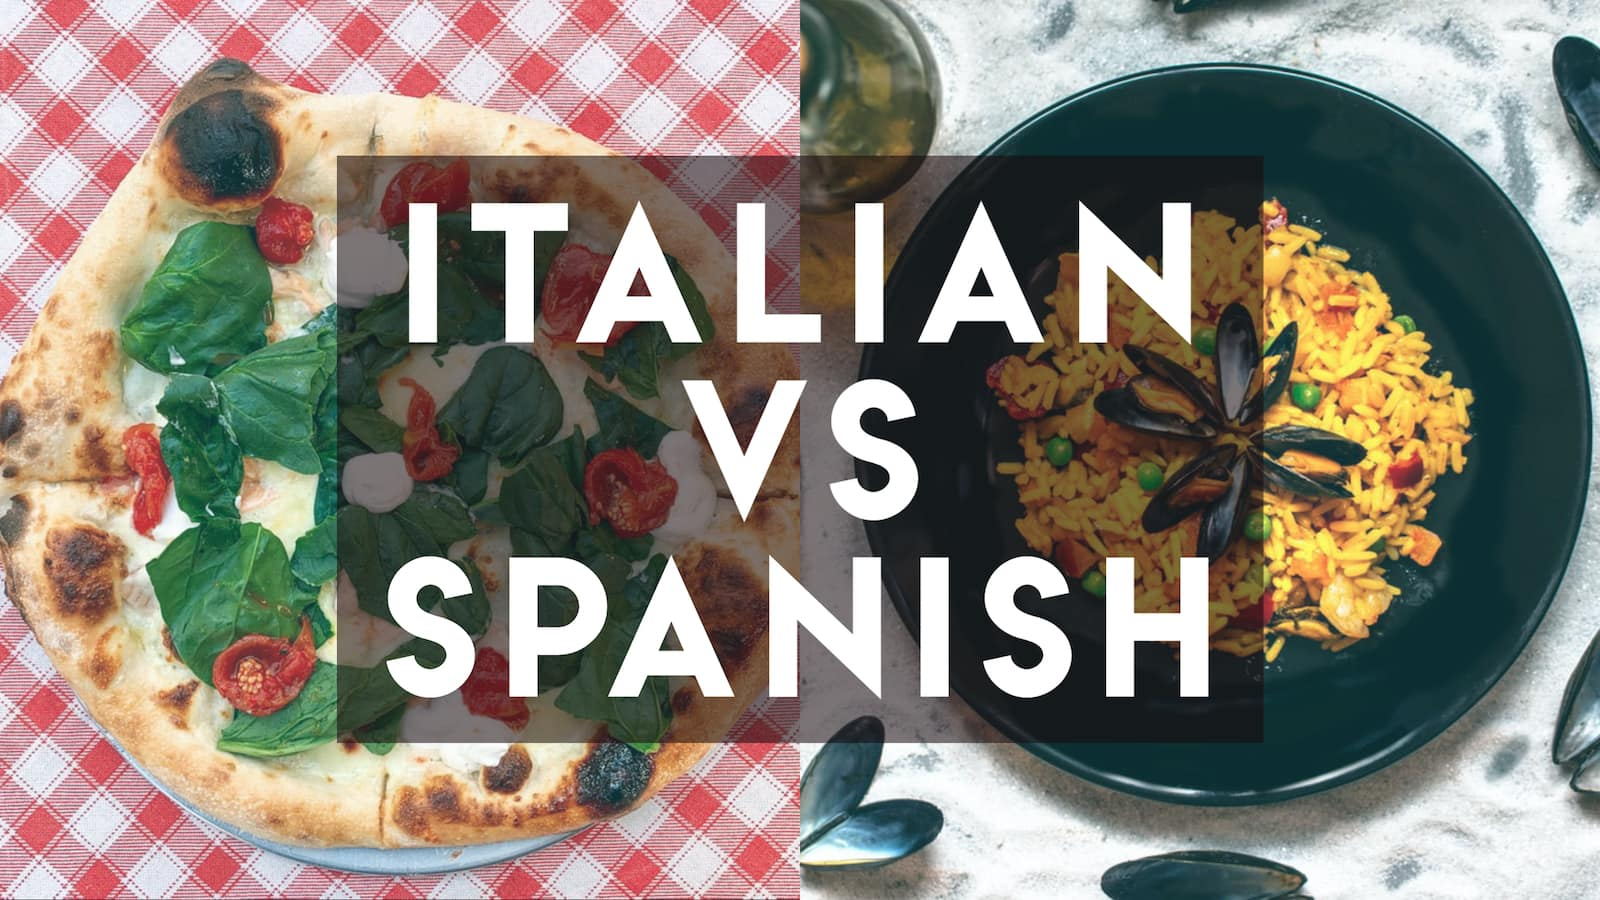 Italian vs Spanish text over overlay of pizza and paella